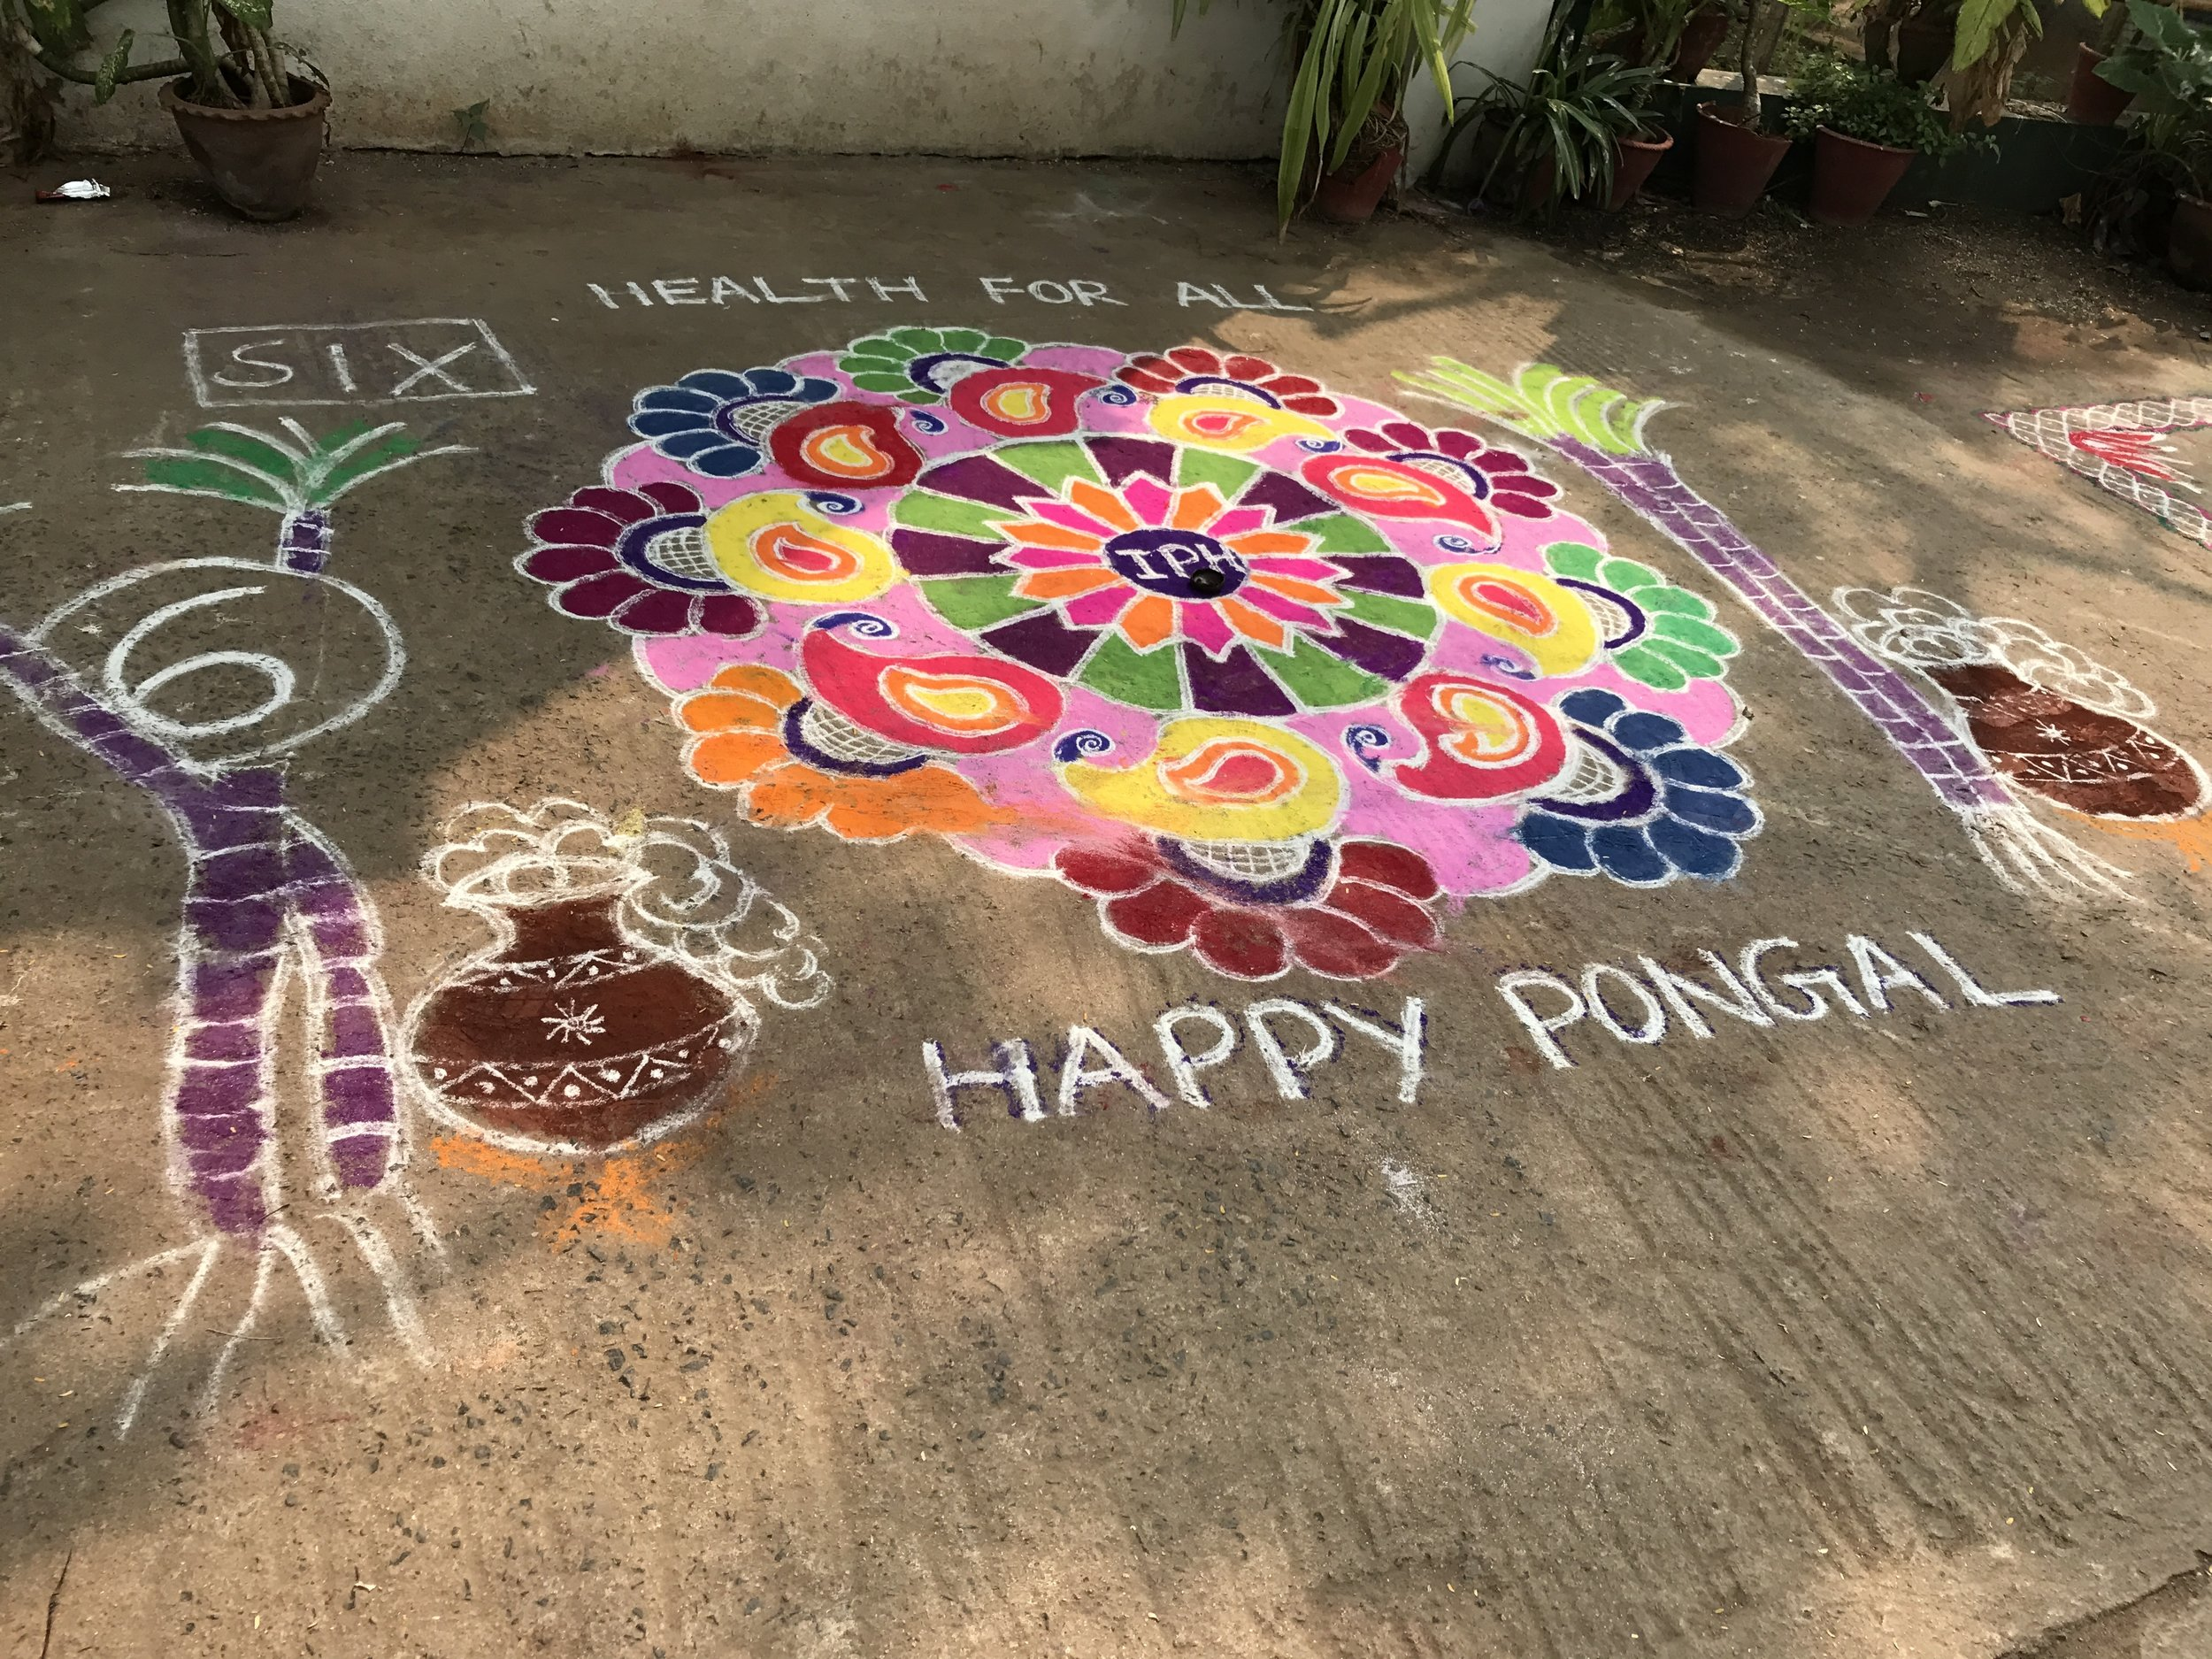 The day's activities included a  kolam  drawing competition between groups of nurses and staff members at the IPH. The designs are a Pongal tradition made mostly of colored chalk that often include flowers, candles, and other decorations.